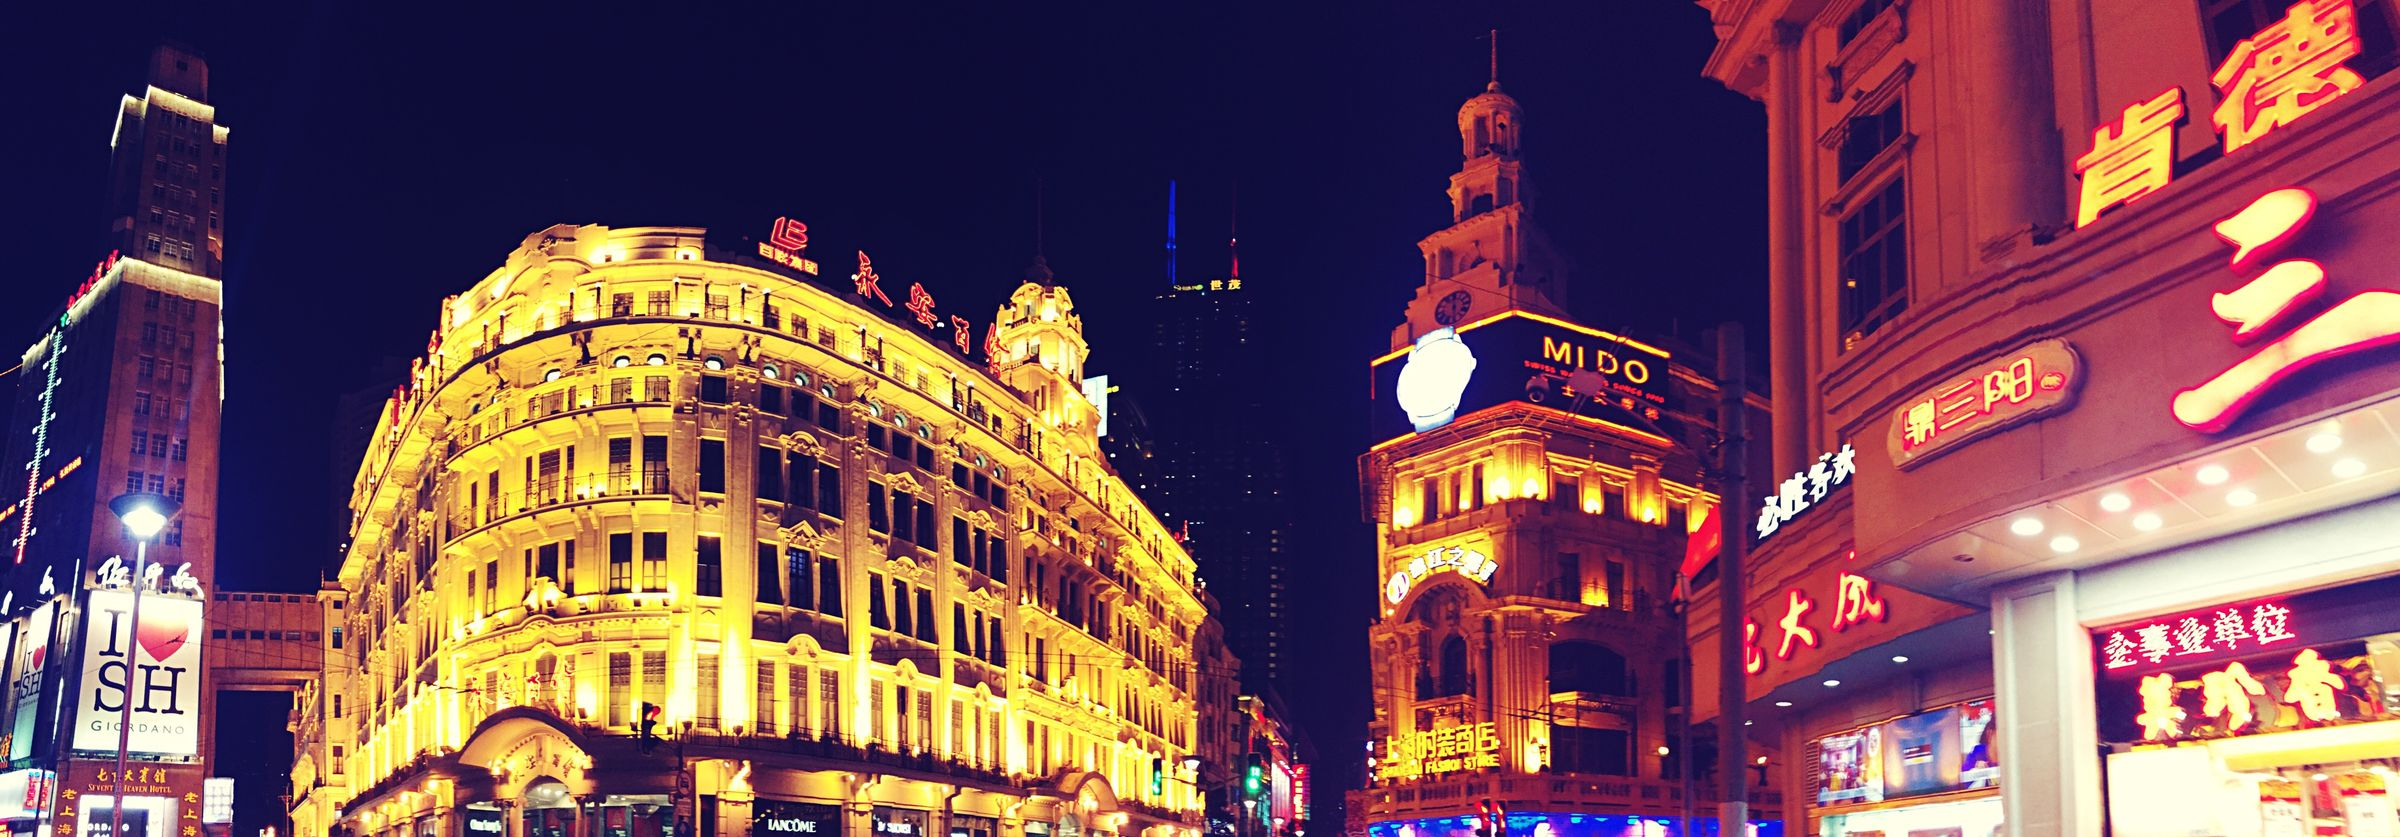 Nanjing East Road Night Lights Shanghai Night Old Town Shanghai Charisma Highstreet Shopping District Shanghai❤ Old Shanghai